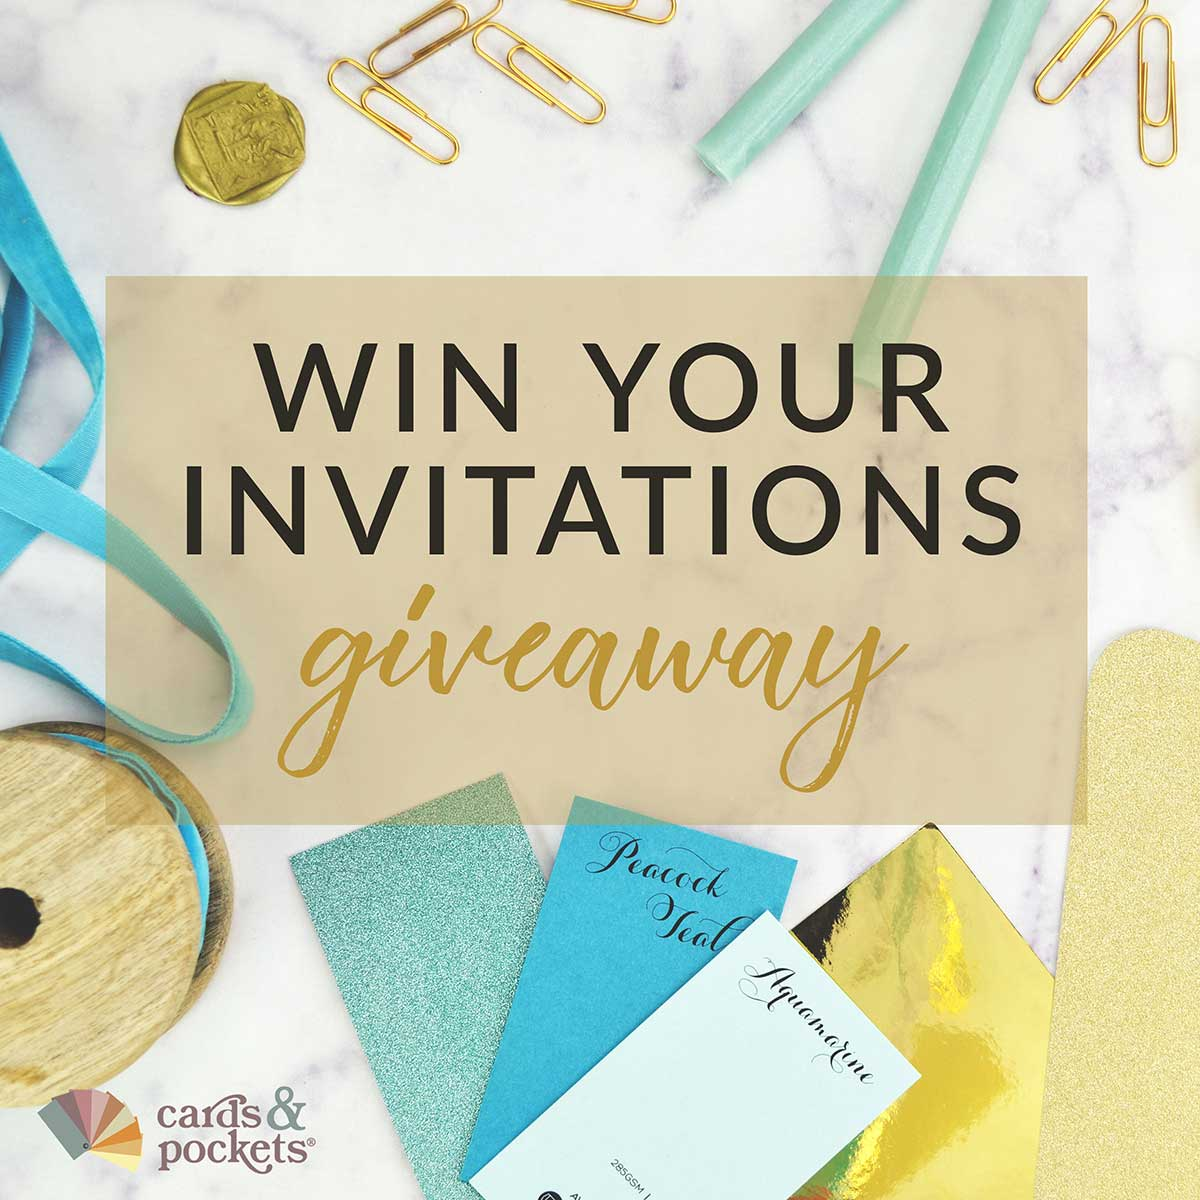 Win Your Wedding Invitations 2018 Instagram Contest